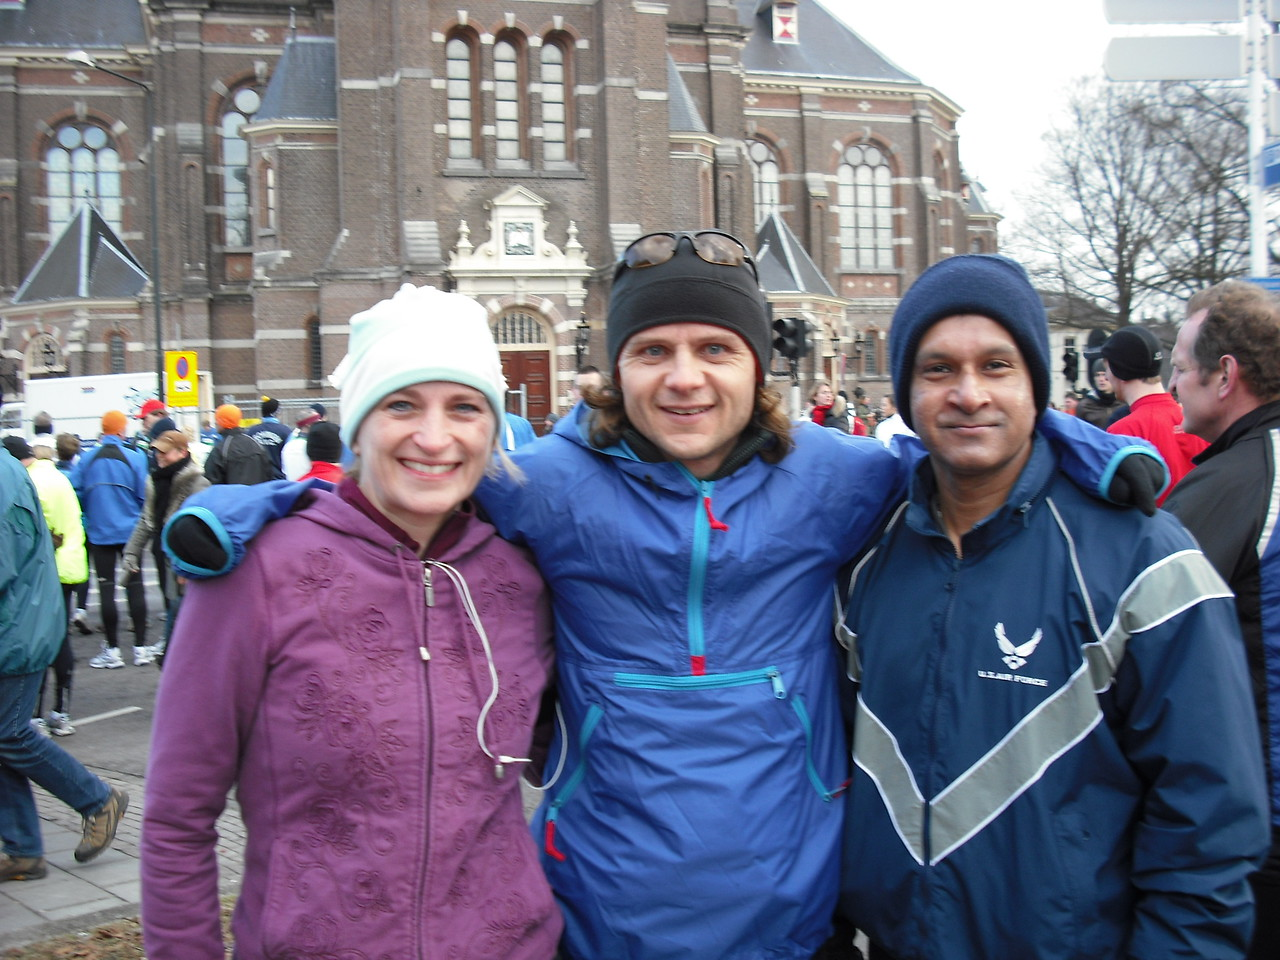 That's our friend Sonny on the right who we met in Apeldoorn for the race. Sonny is a die-hard half-marathoner and a lover of sweet wine.  He also likes to bite fingers so I kept my fingers safely tucked in my jacket.